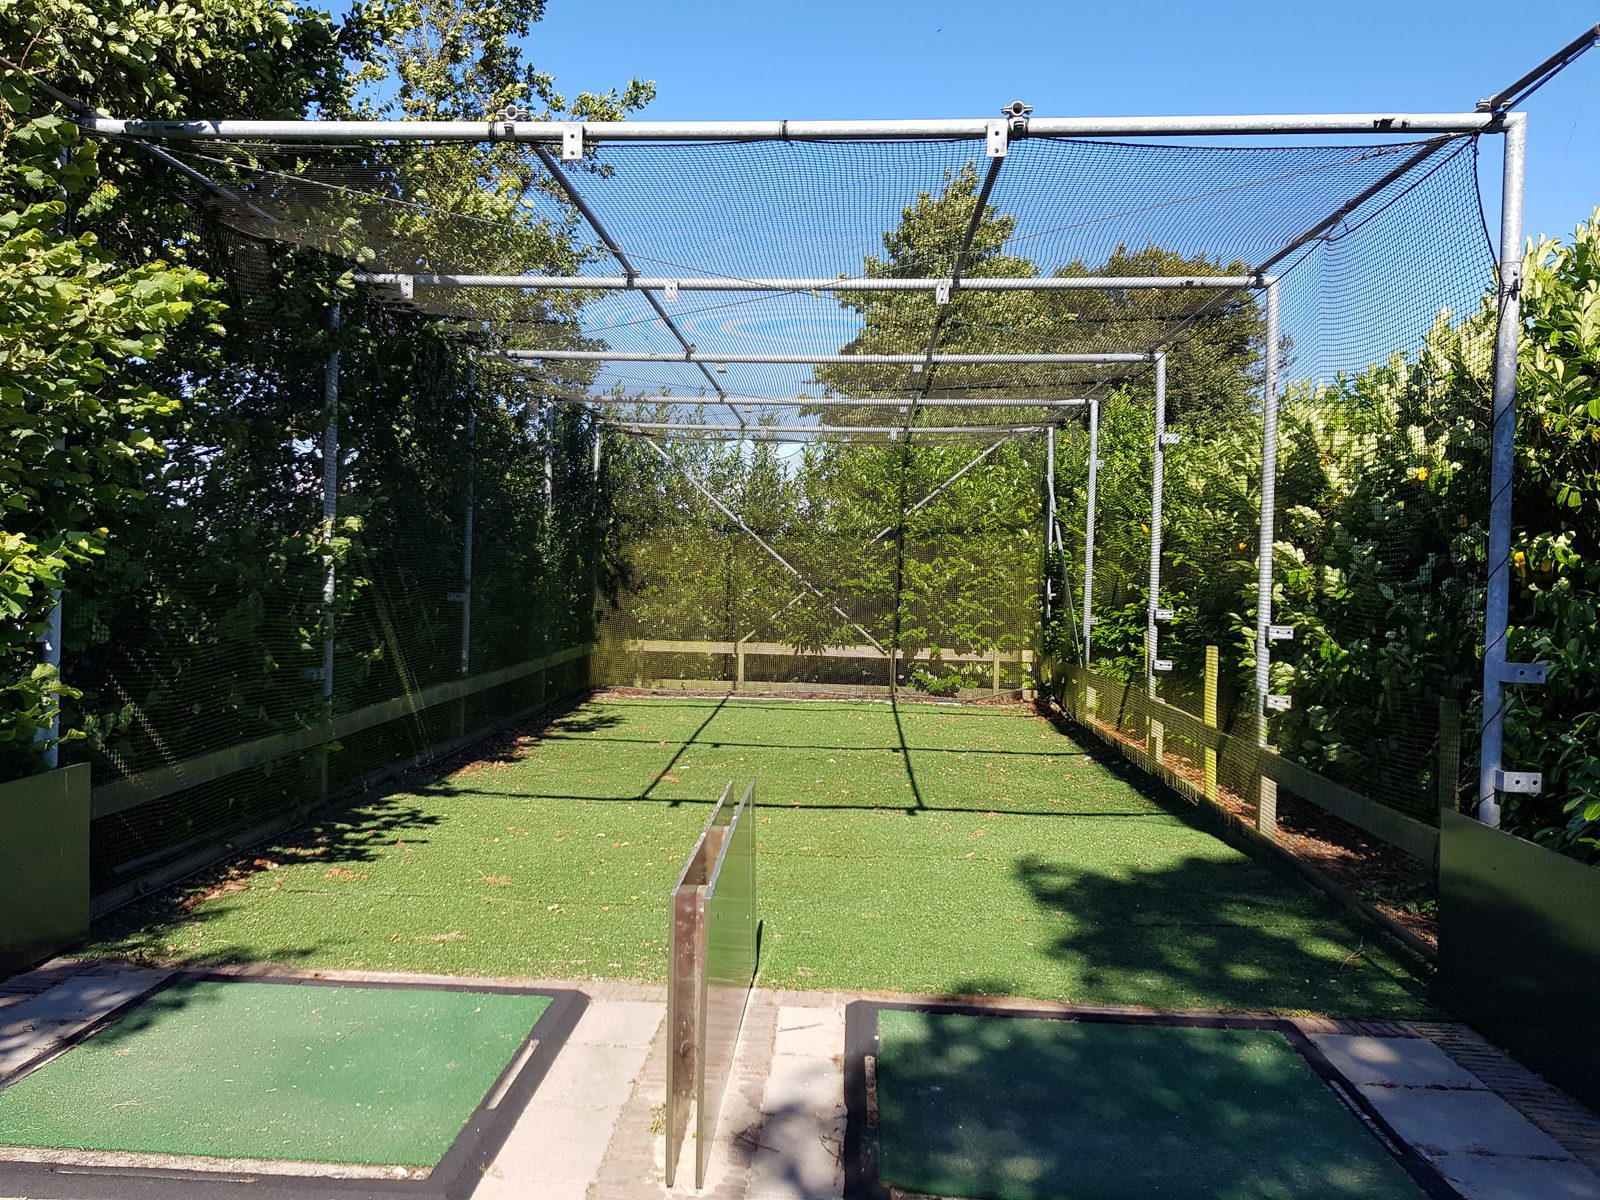 Two golf driving practice cages